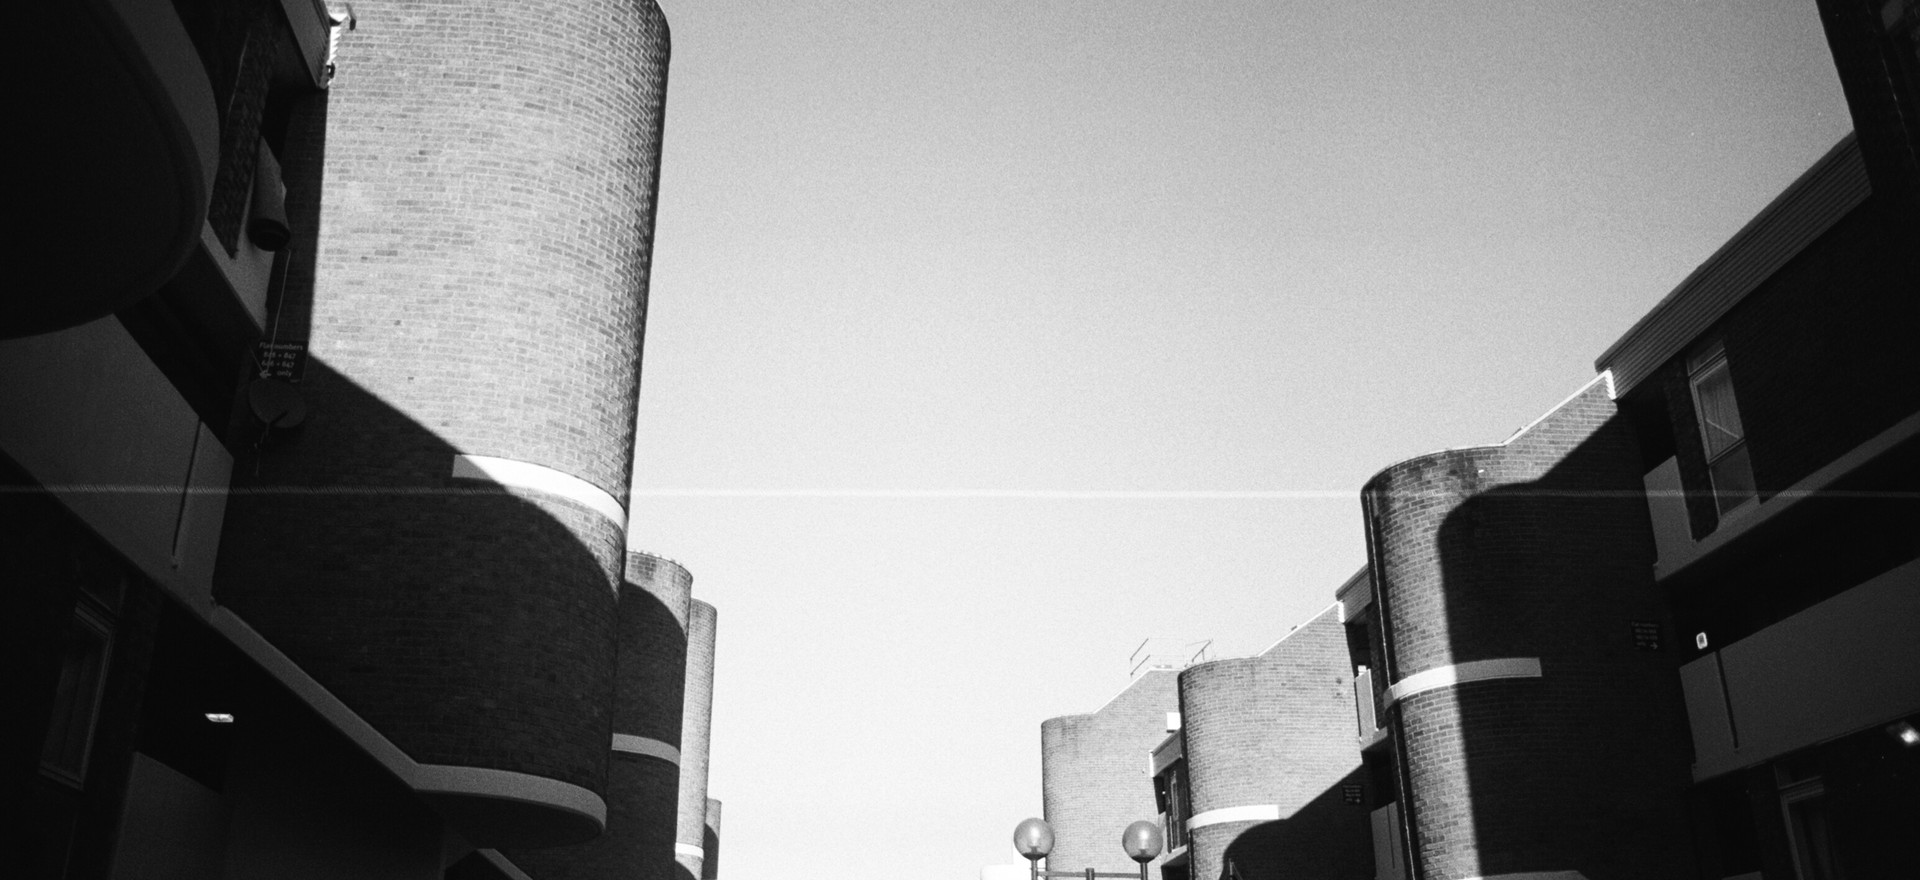 Milford Towers, Catford, South East London